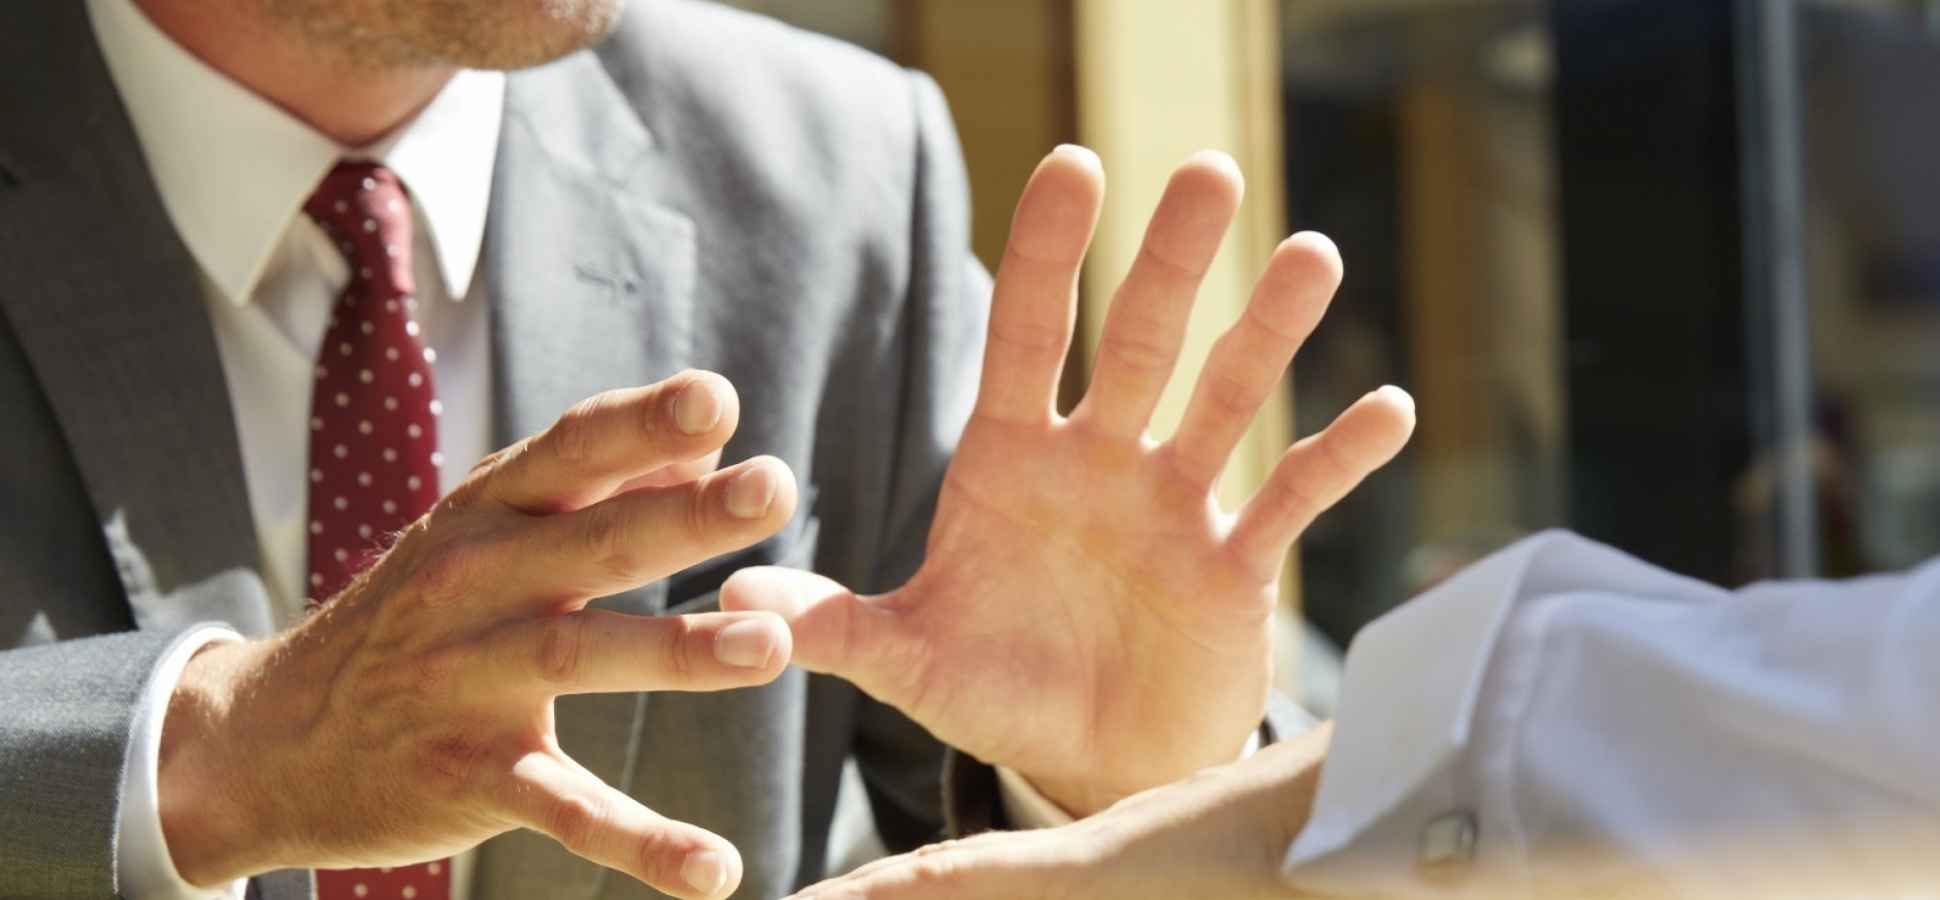 20 Easy Ways to Be a Great Communicator